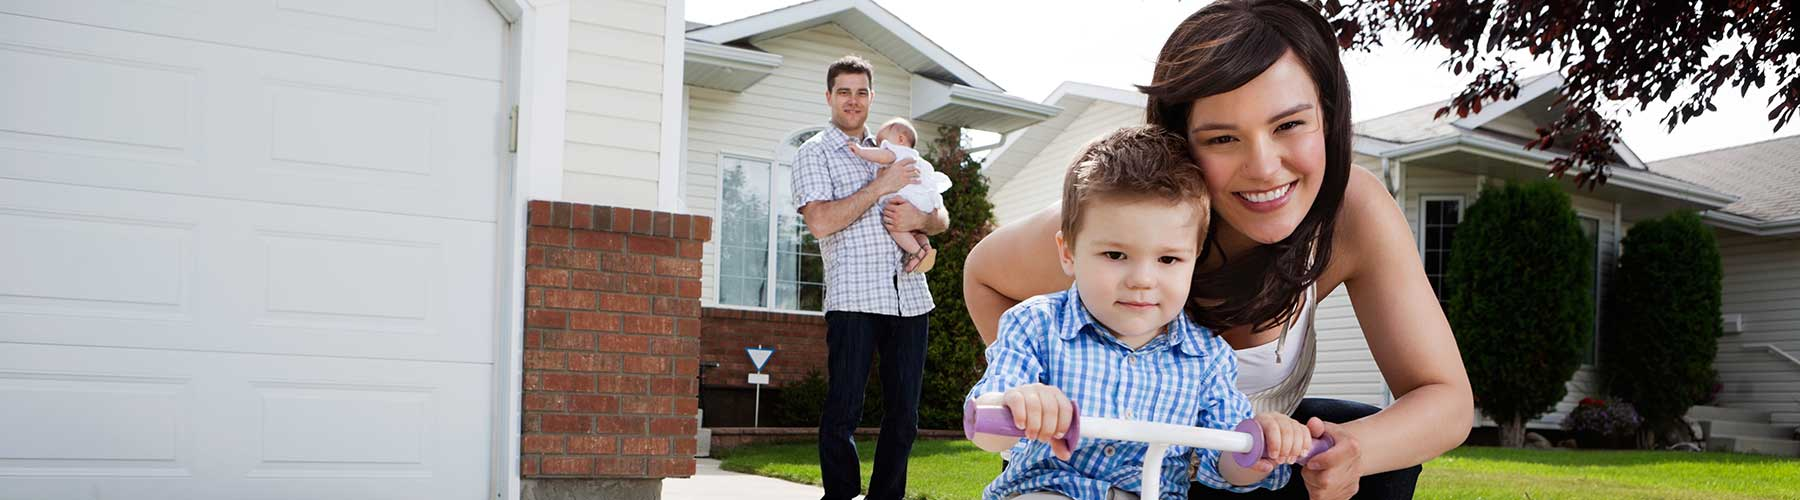 Personal insurance represented by family posing in front of their home